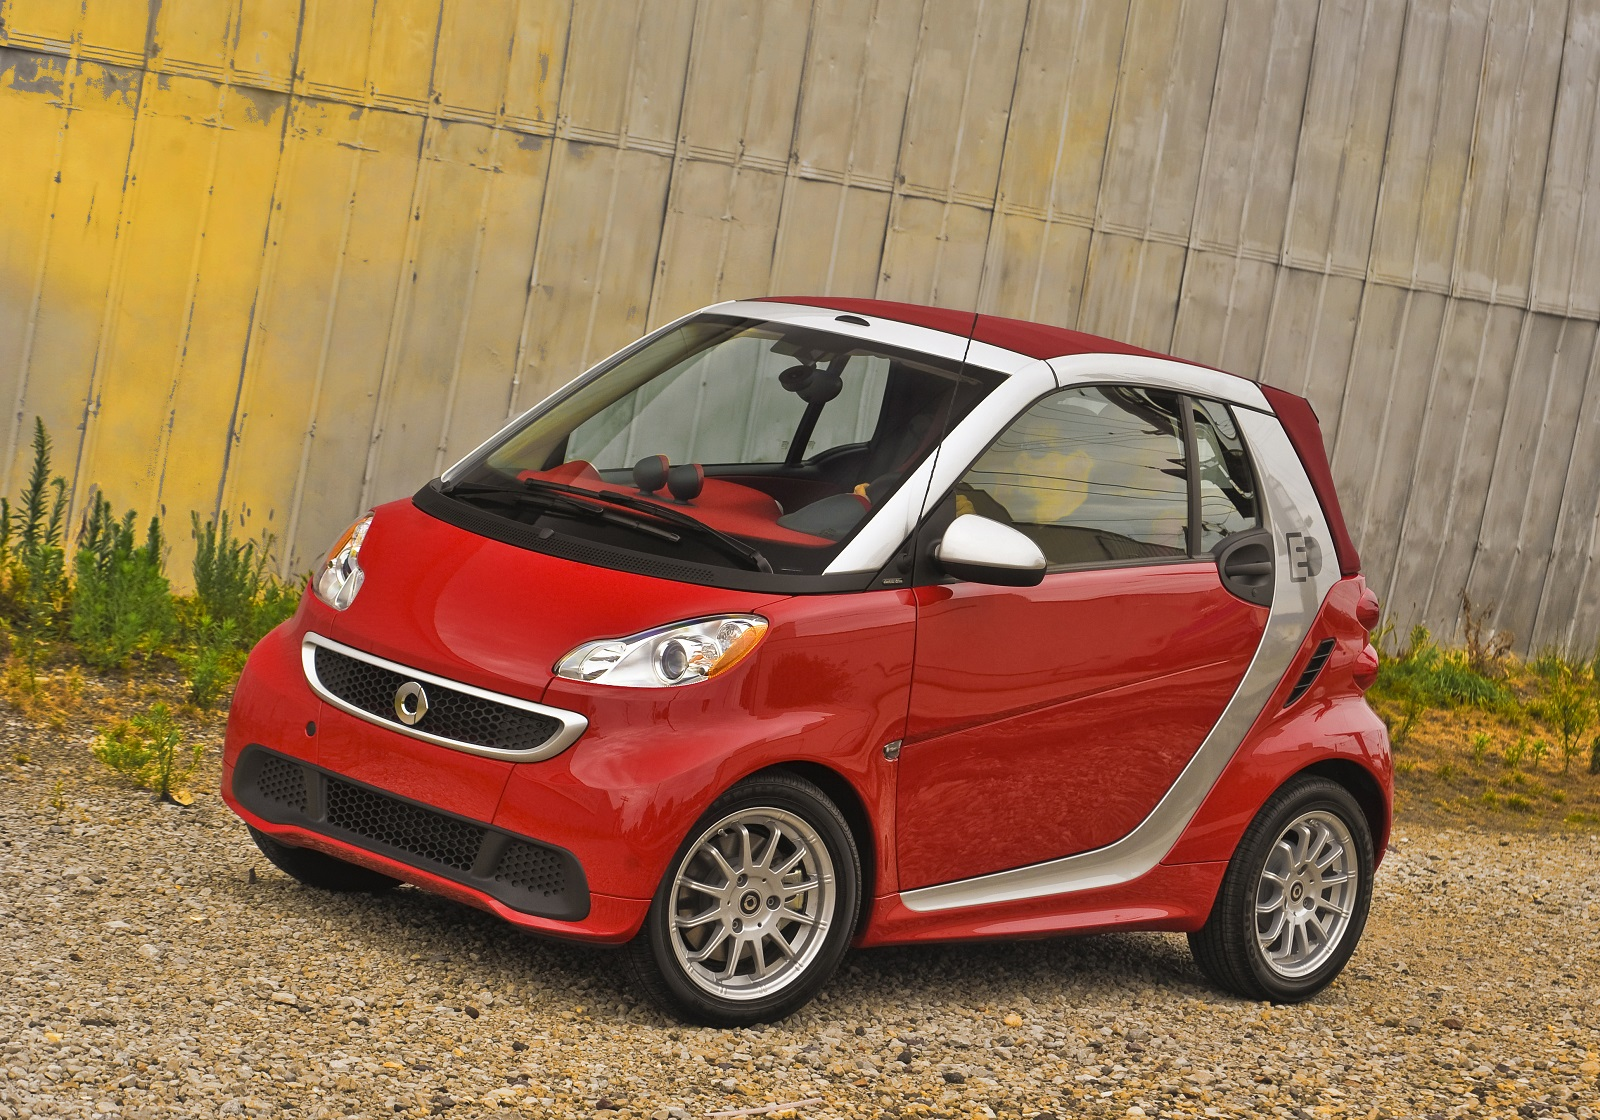 2014 smart fortwo safety review and crash test ratings. Black Bedroom Furniture Sets. Home Design Ideas